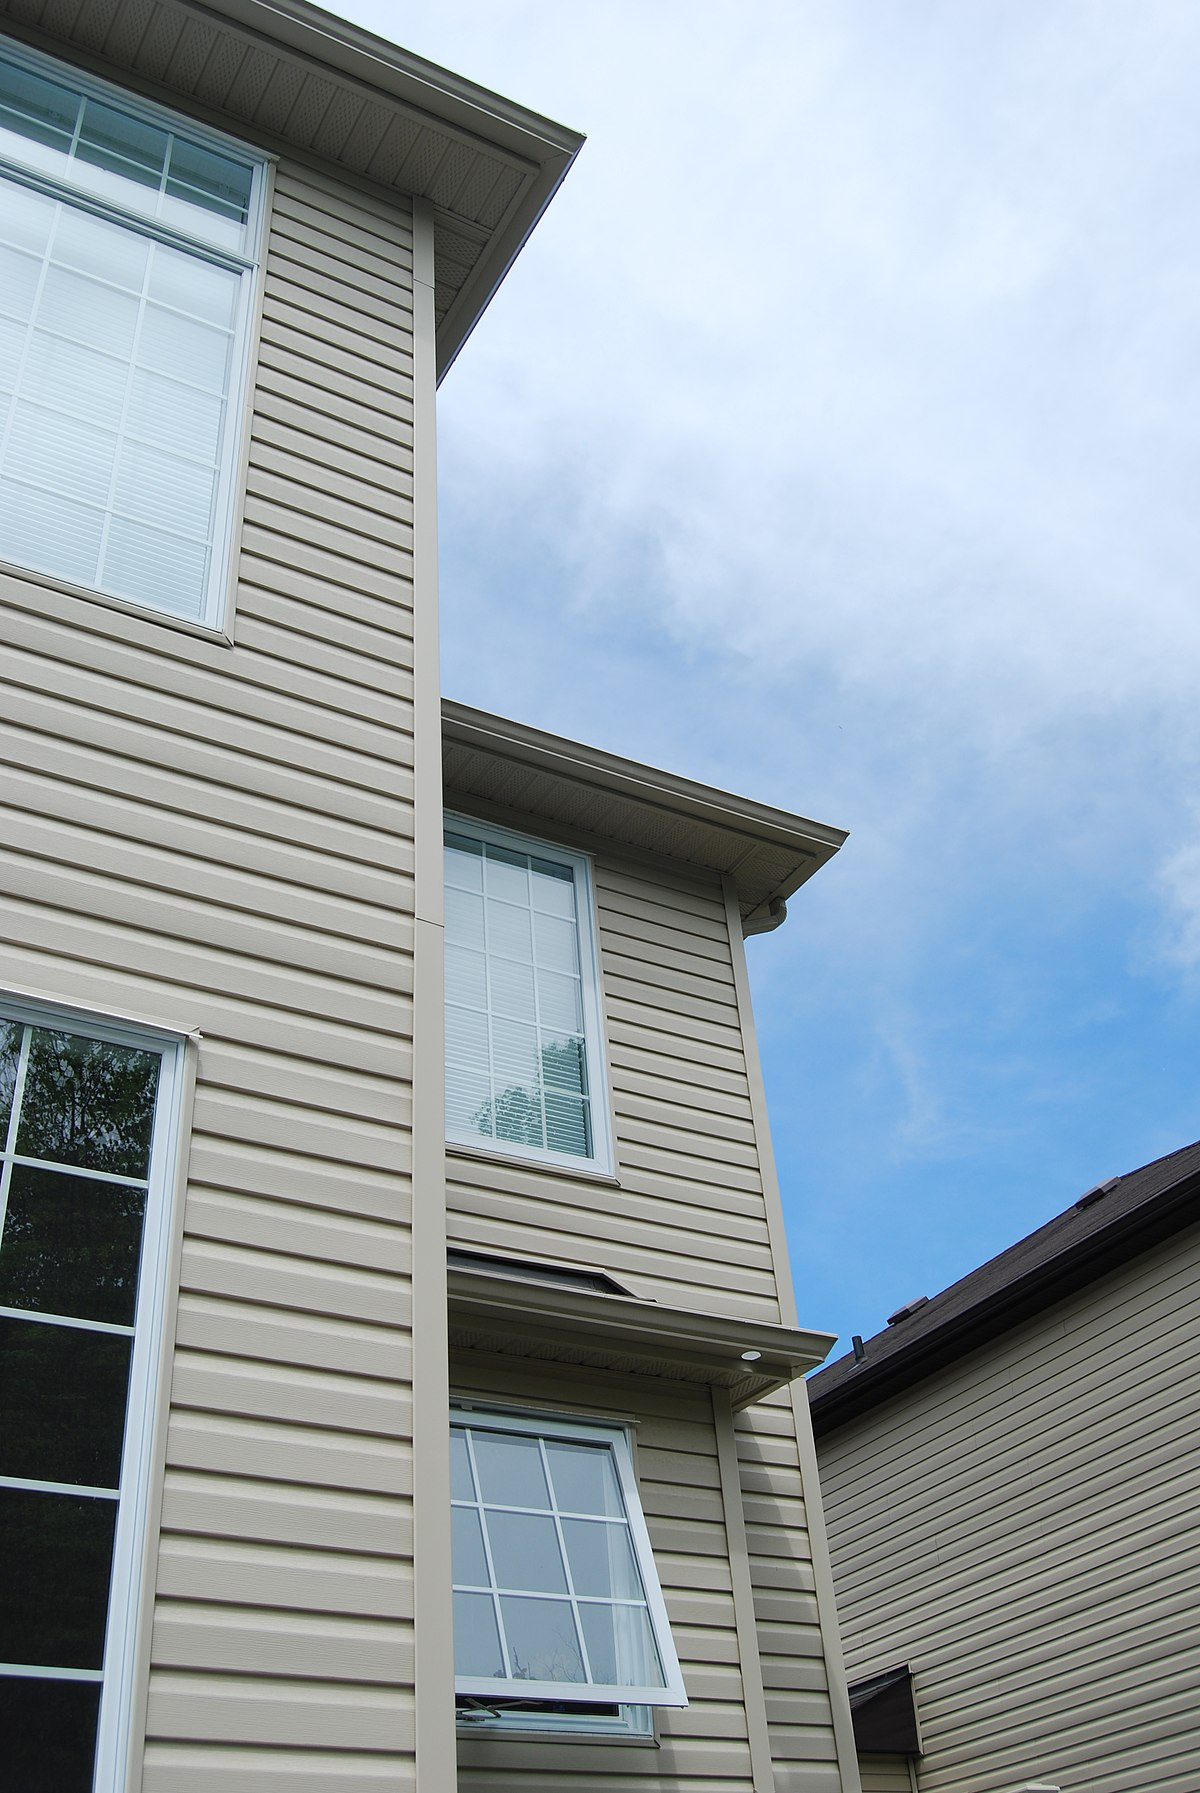 Vinyl siding wikipedia - Exterior materials for buildings ...